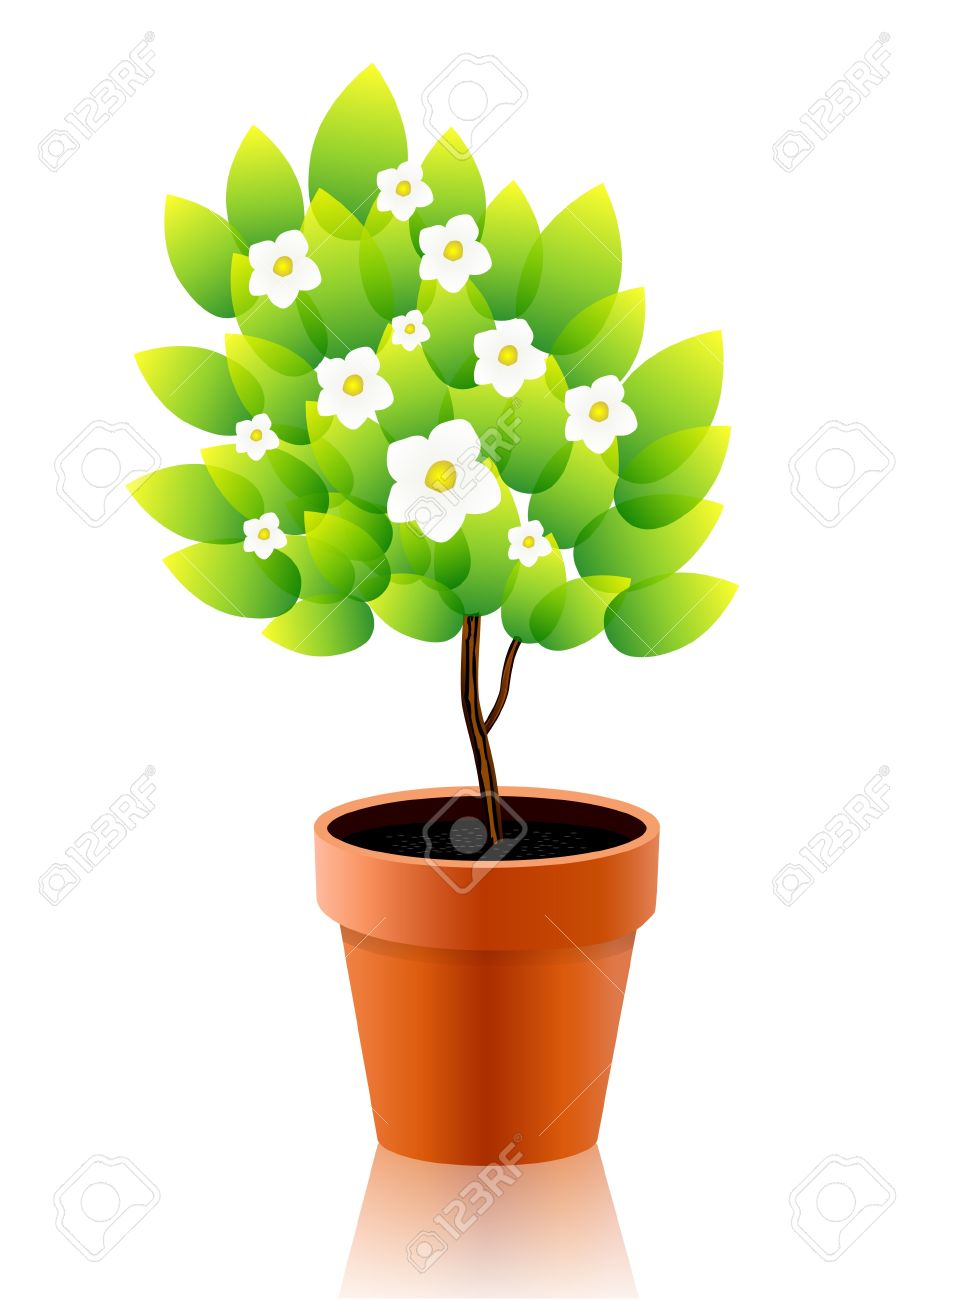 Growing free download best. Planting clipart potted plant